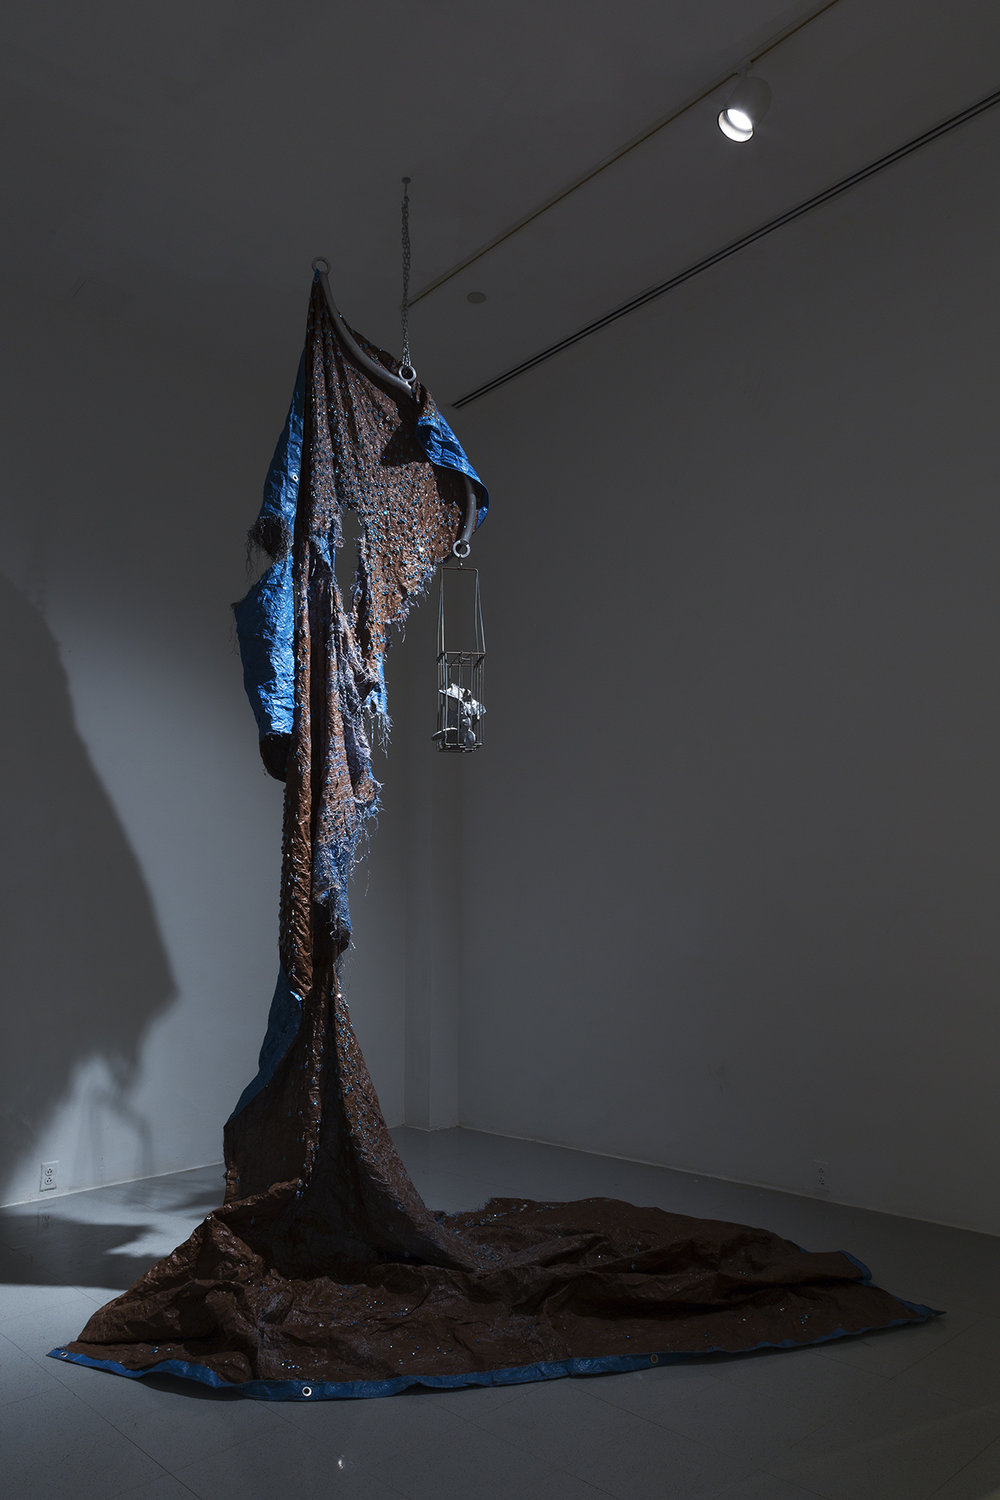 Proud Mary , 2017 Industrial tarp, earrings, fake rhinestones, aluminum, chain, aluminum handrail dimensions variable photo credit: Shark Senesac